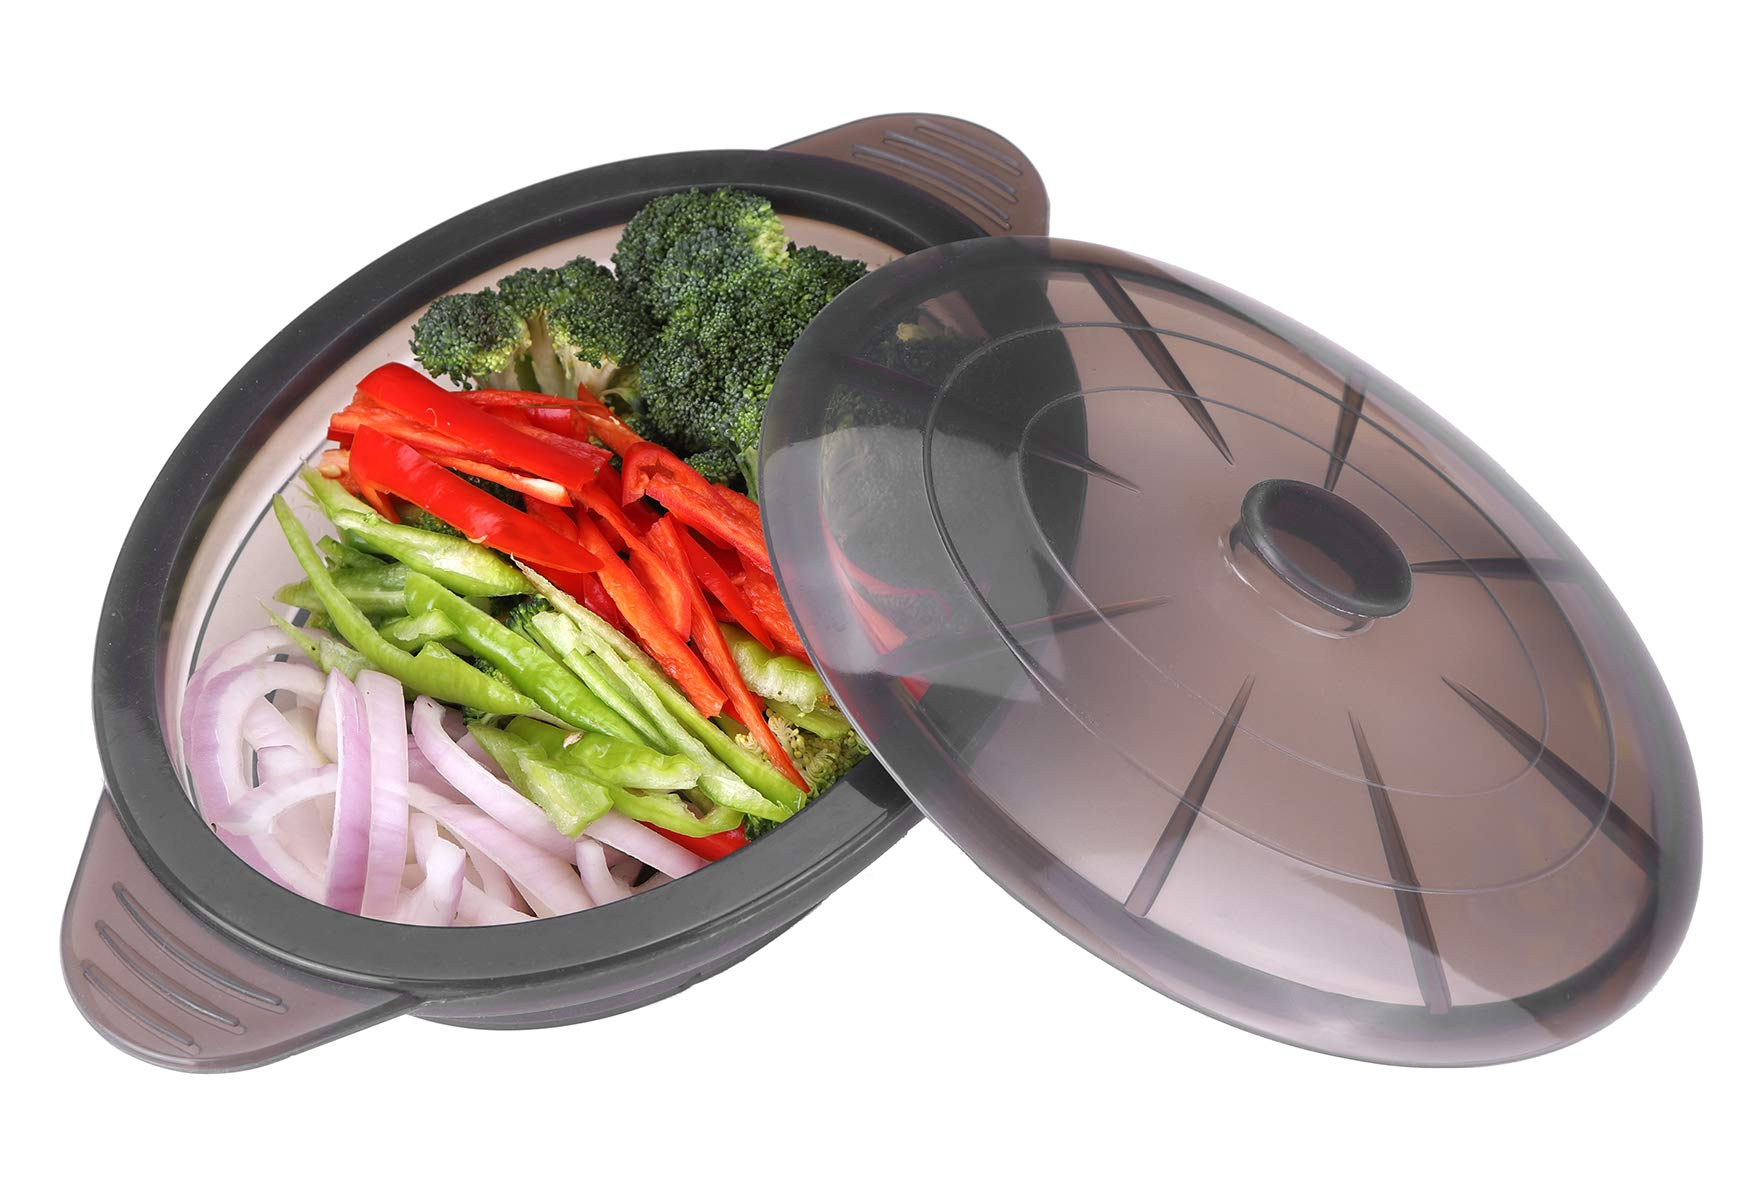 Microwave Steamer Collapsible Bowl-Silicone Steamer with Handle & Lid for Meal Prep with Detachable Partition, Easy to Store, BPA Free,Microwave Cookware, Freezer & Dishwasher Safe, Black